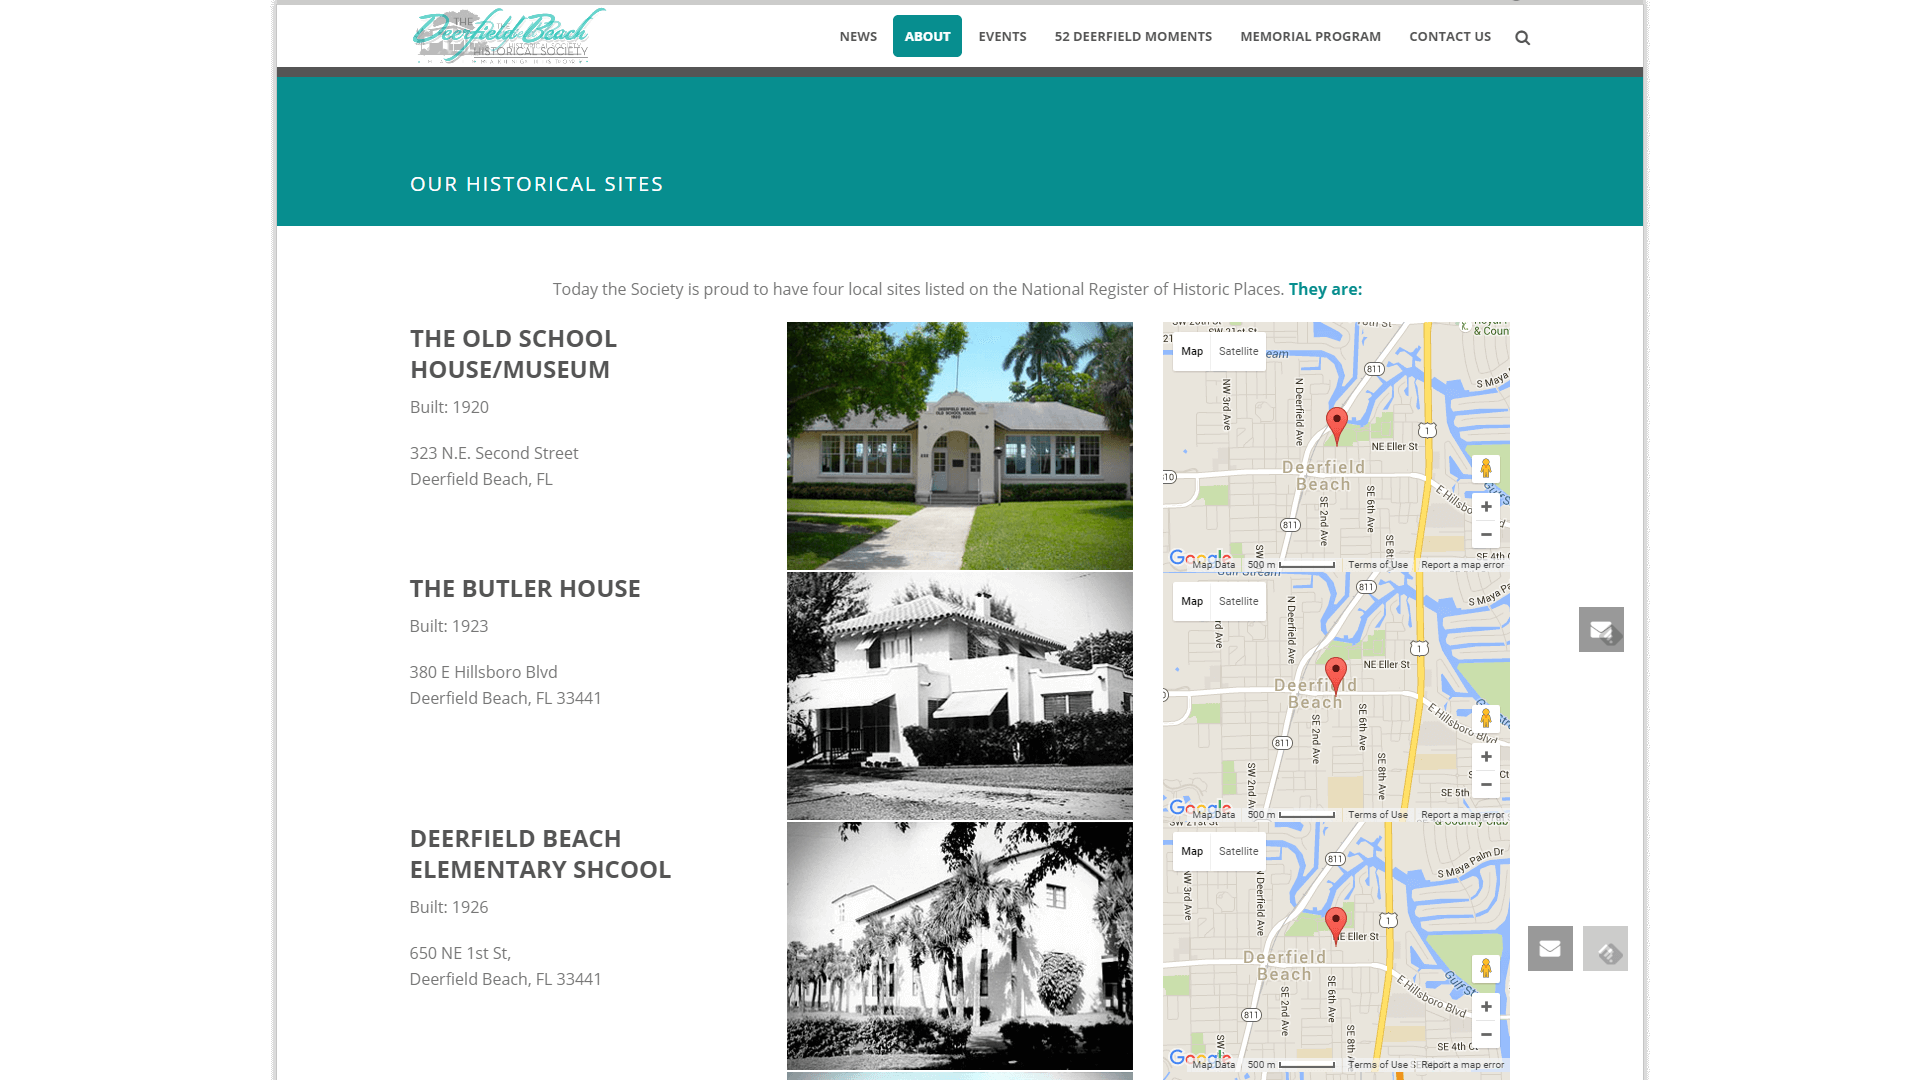 BRIAN HILL DESIGN: The Deerfield Beach Historical Society